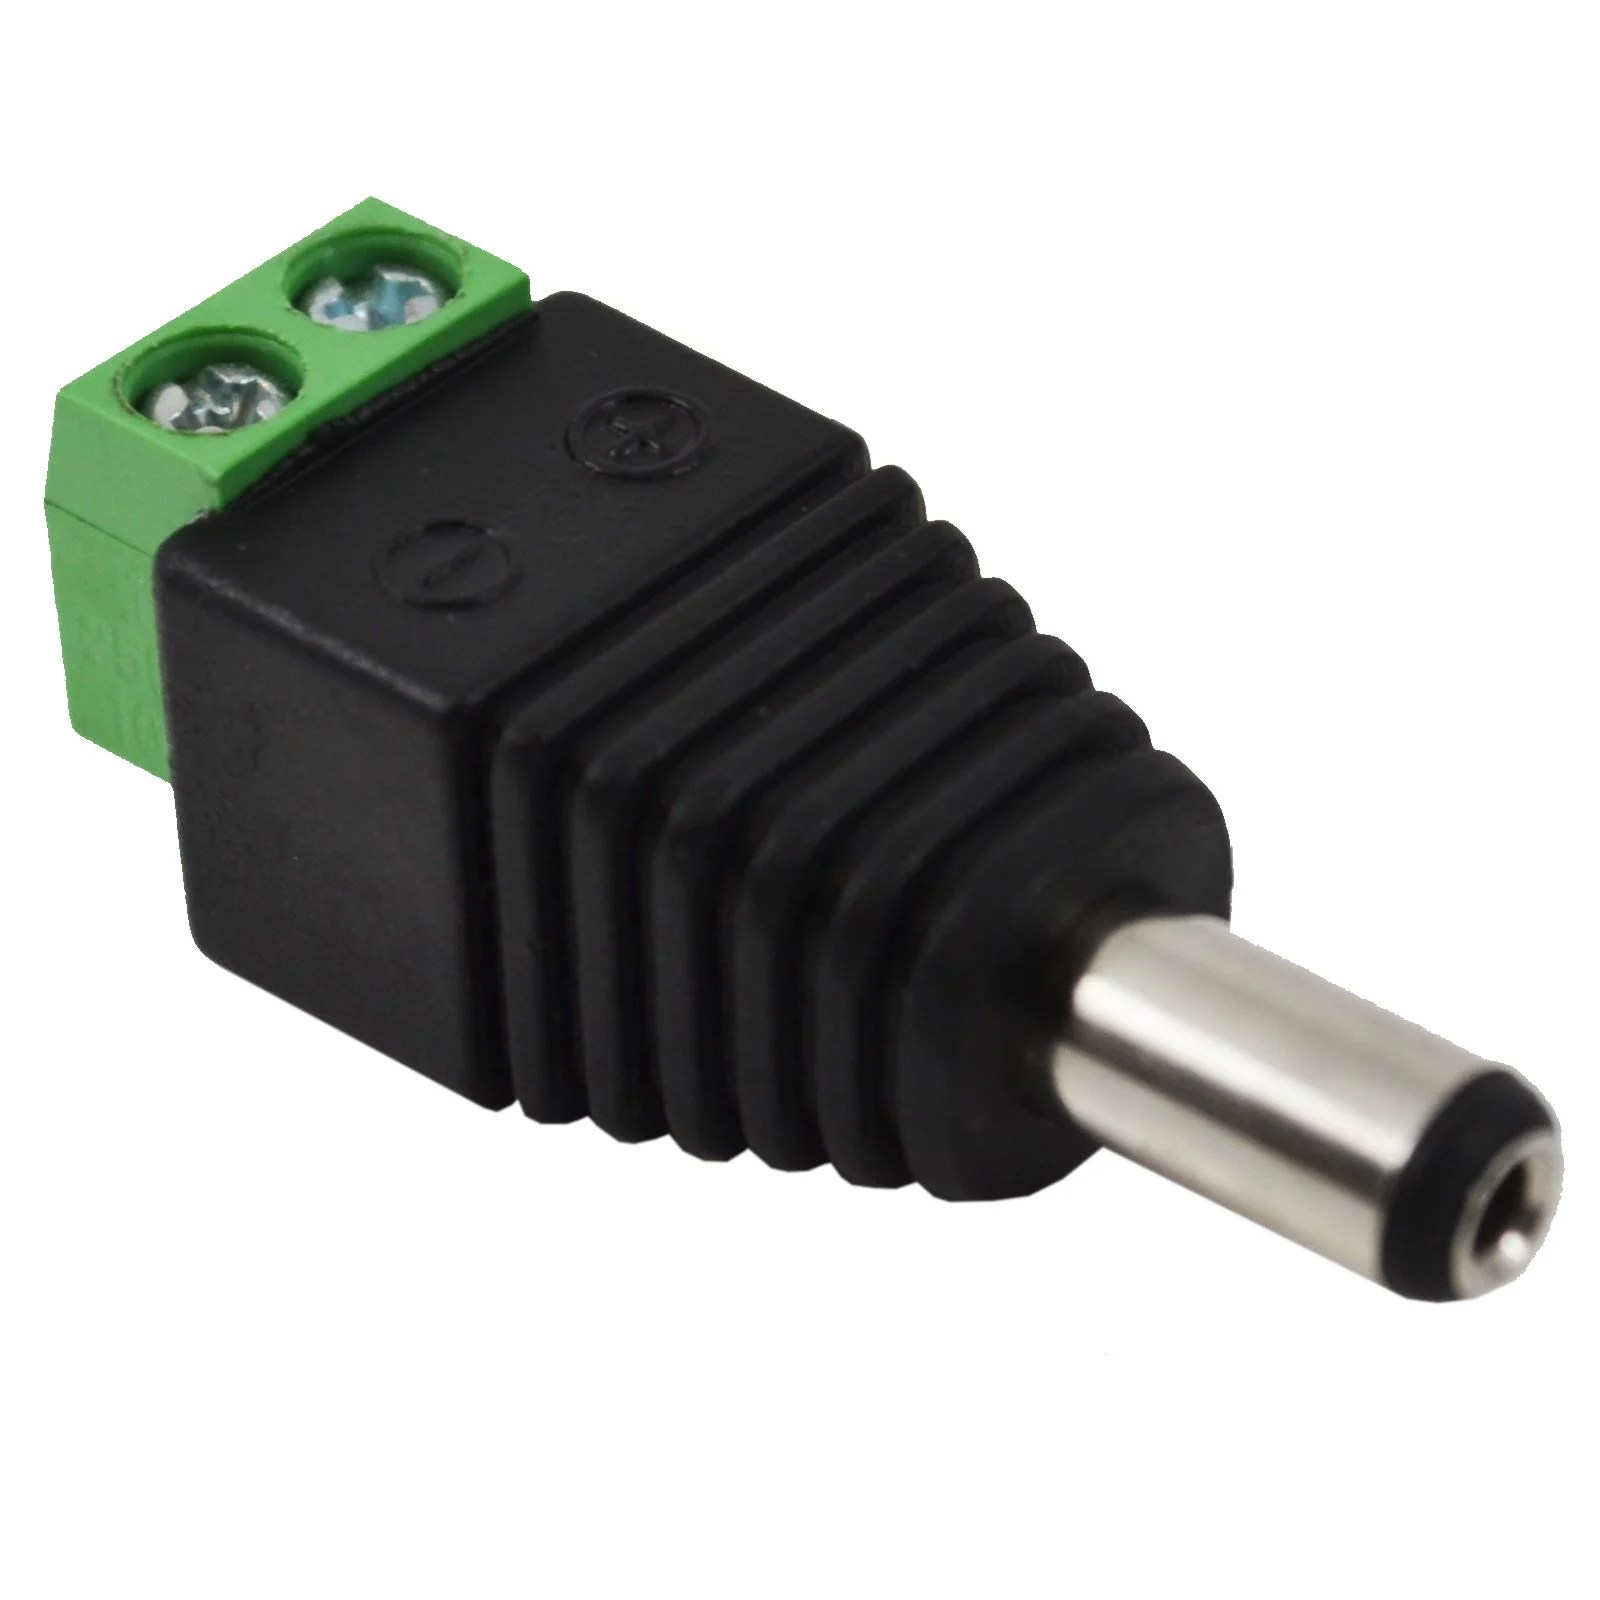 hight resolution of male female 2 1 5 5mm for dc power jack adapter connector plug for cctv